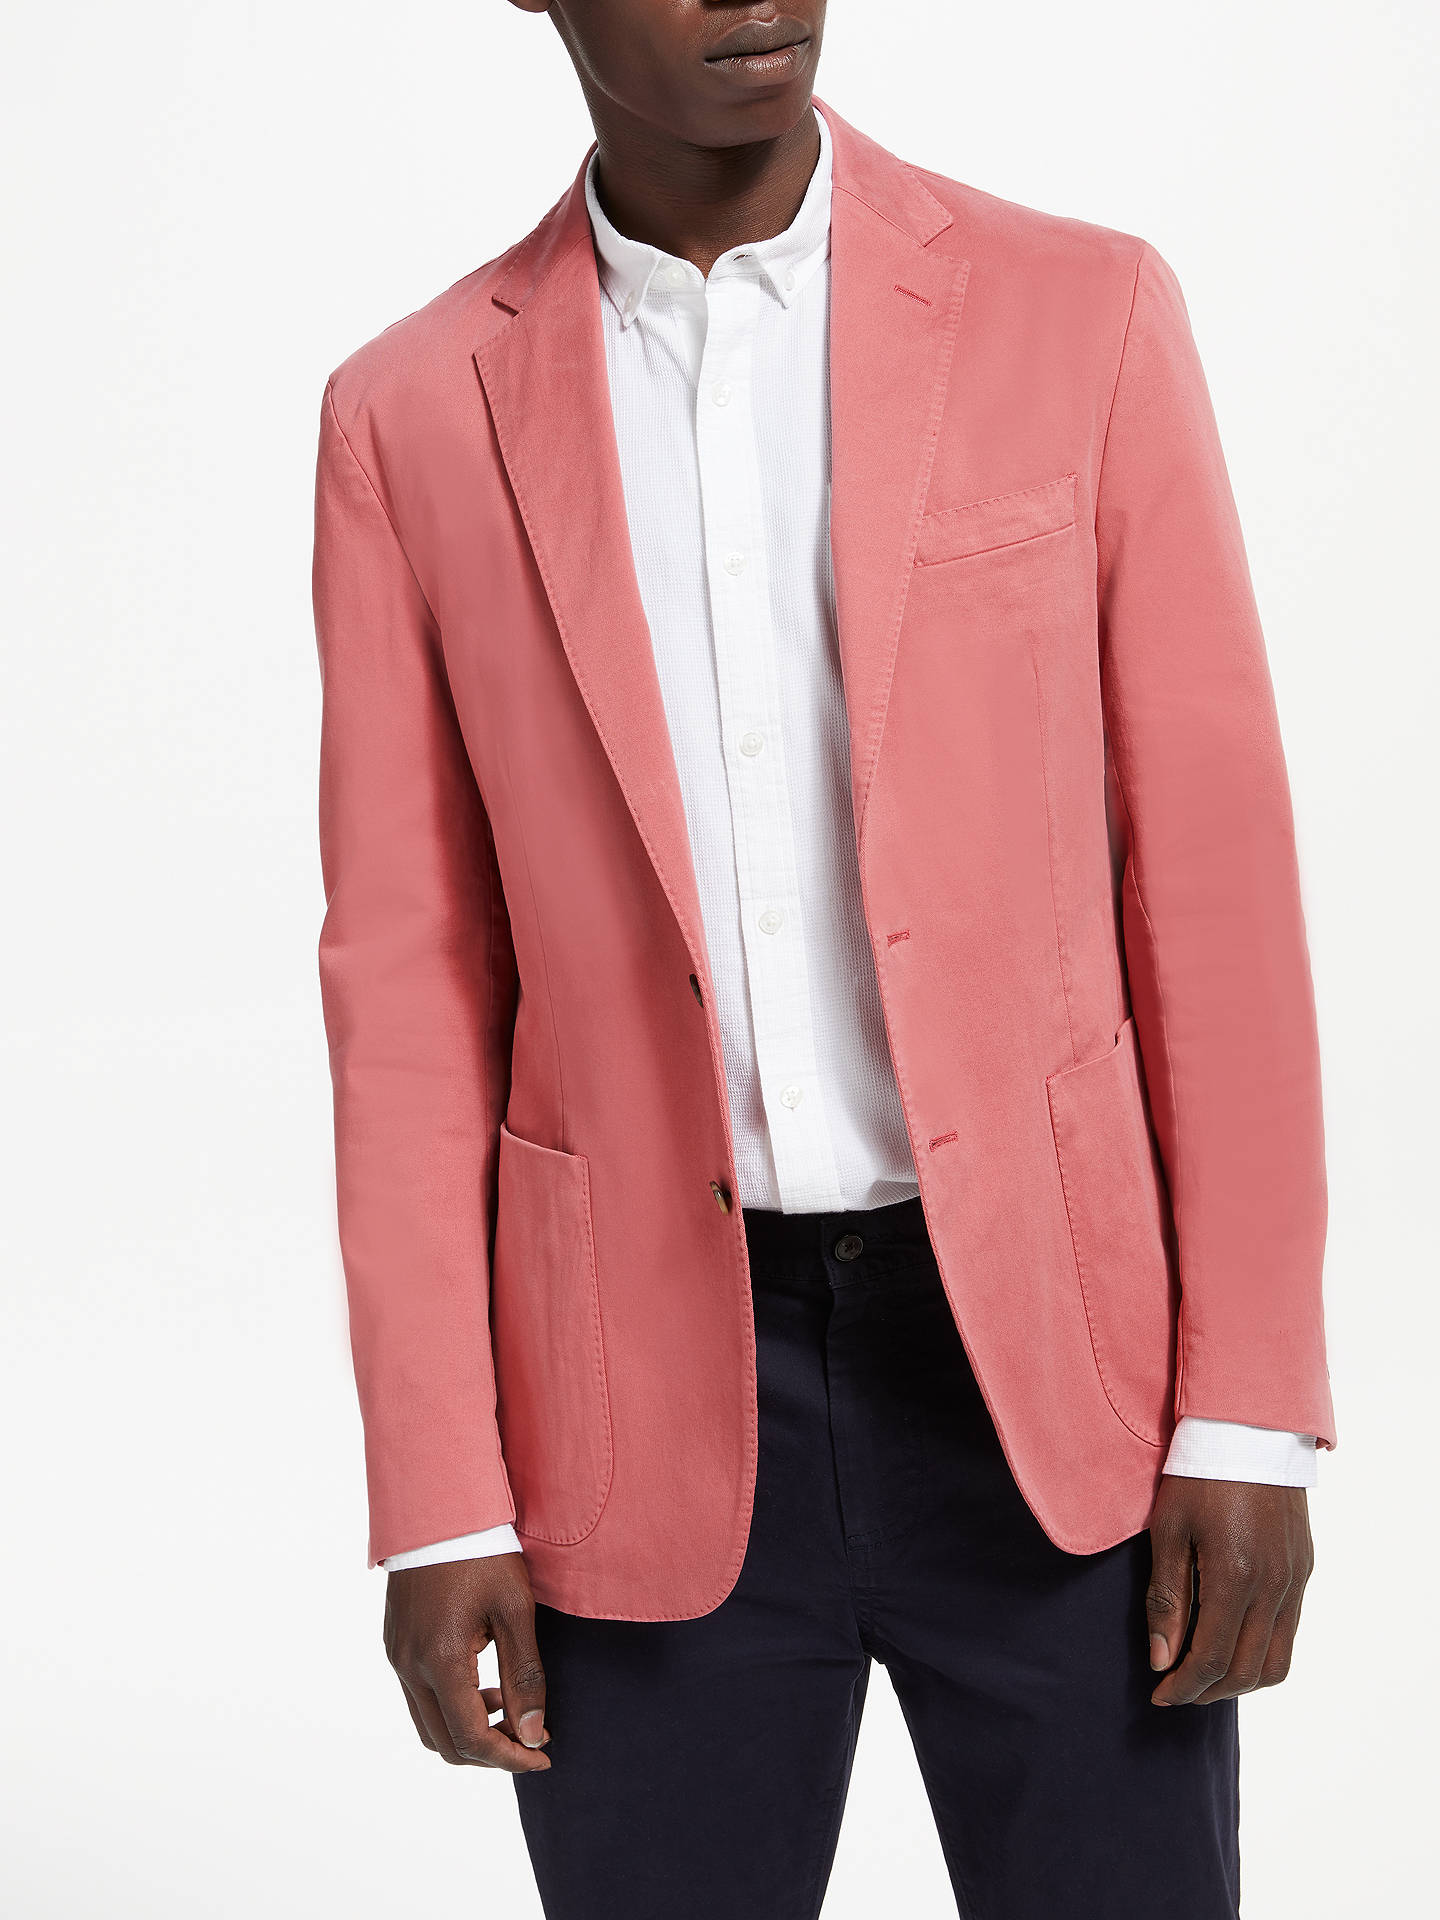 Buy Polo Ralph Lauren Sports Coat, Nantucket Red, 38R Online at johnlewis.com